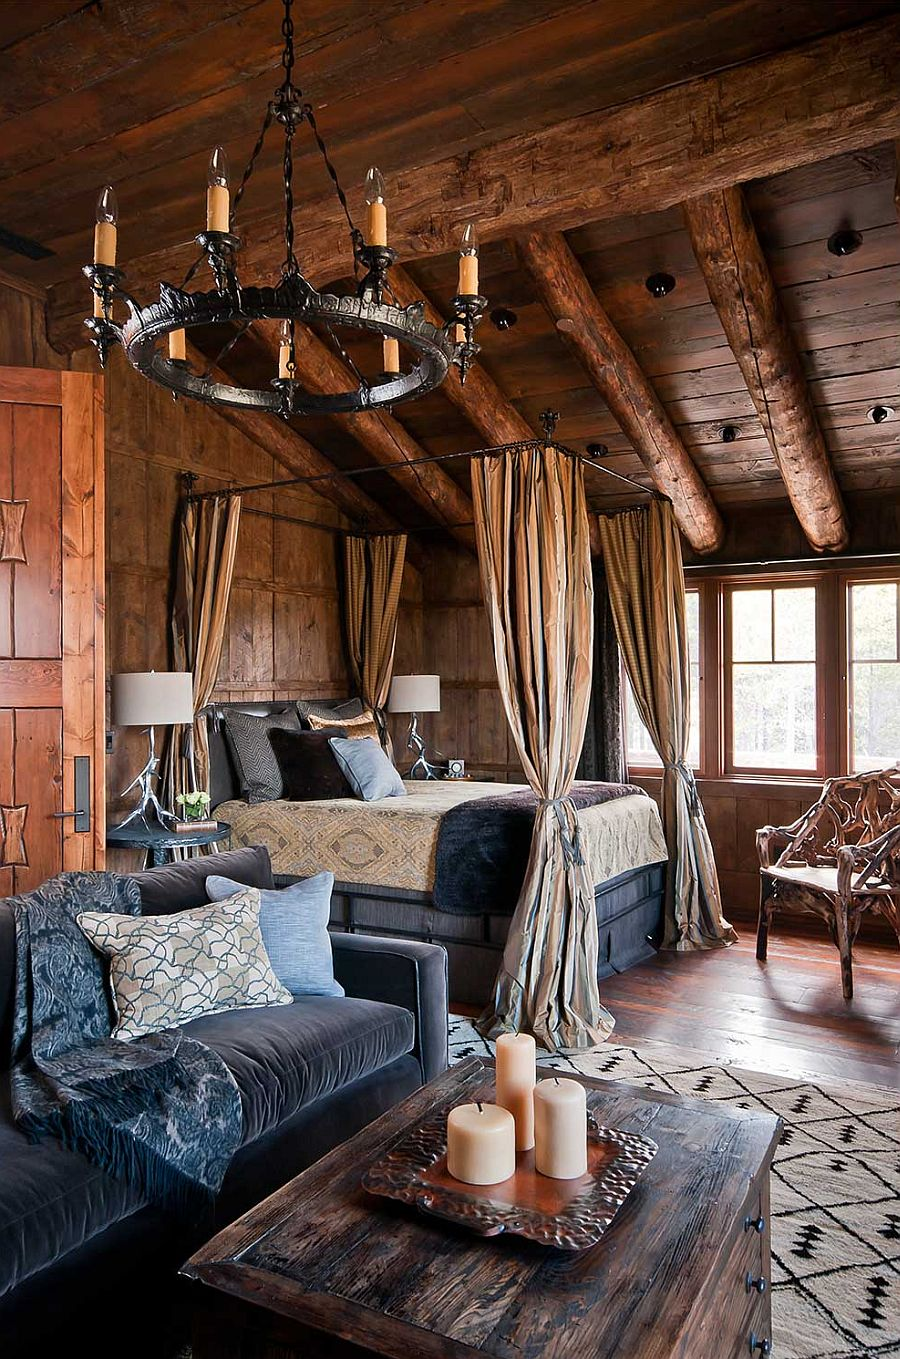 Dancing hearts picture perfect hillside escape in montana - Cosy home deko ...